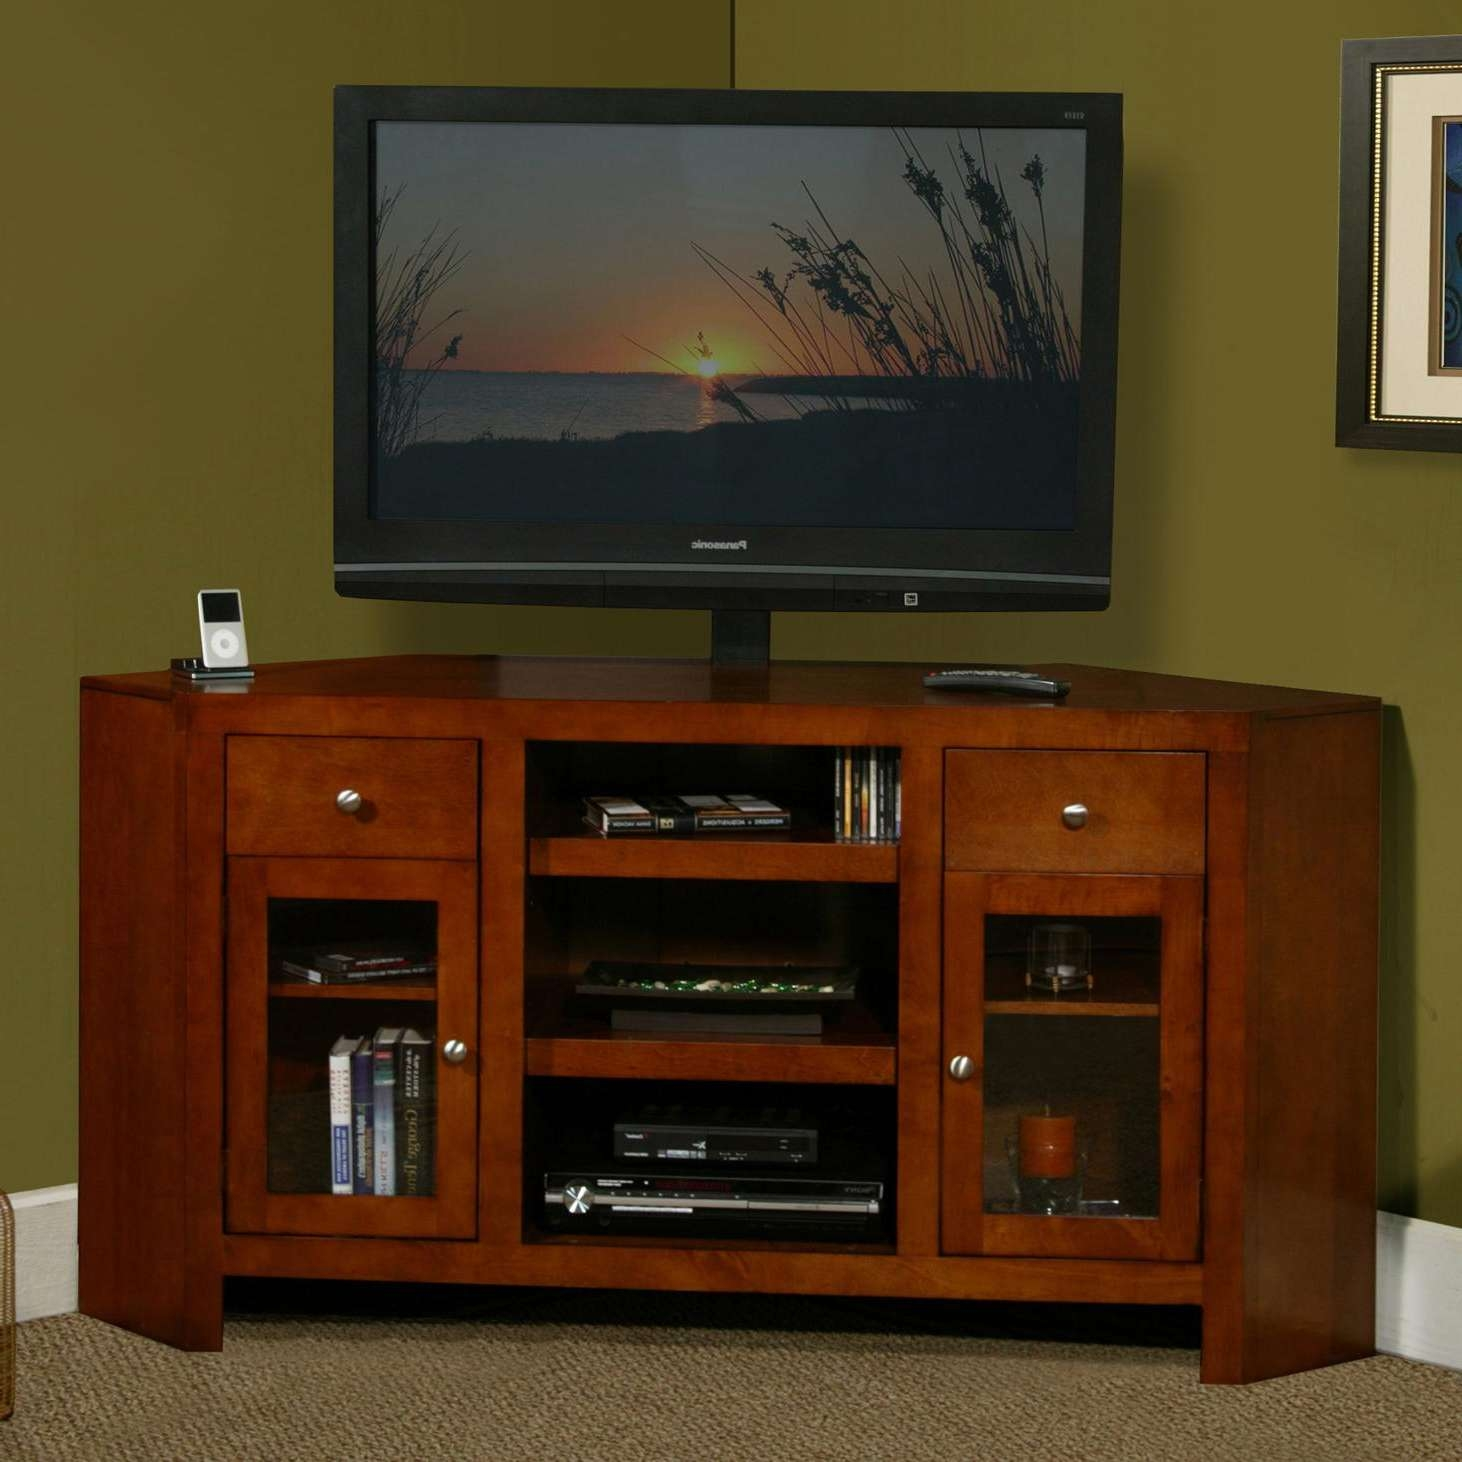 50 Literarywondrous Corner Tv Stand For 55 Tv Photo Ideas Black Within Corner Tv Stands For 50 Inch Tv (Gallery 14 of 20)